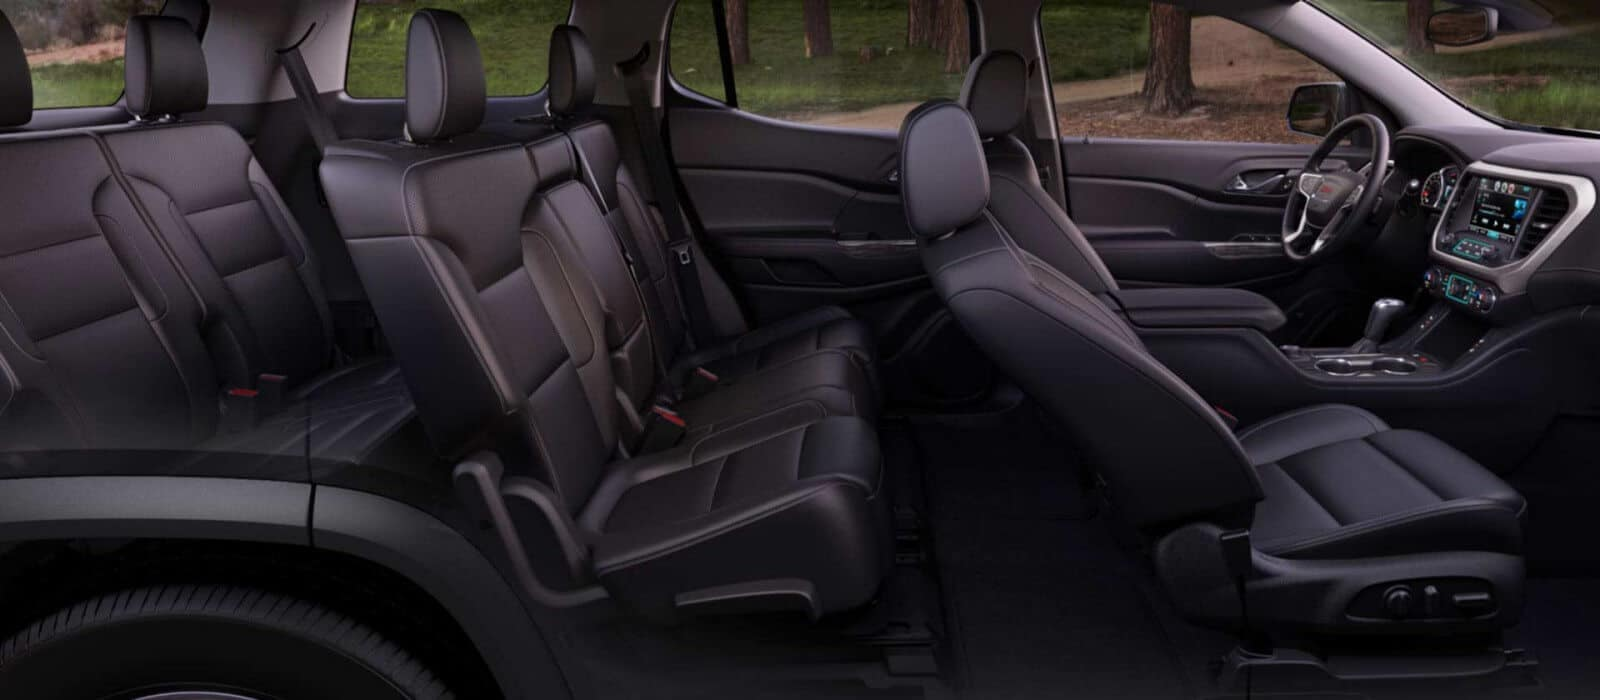 2018 GMC Interior Seating Side View